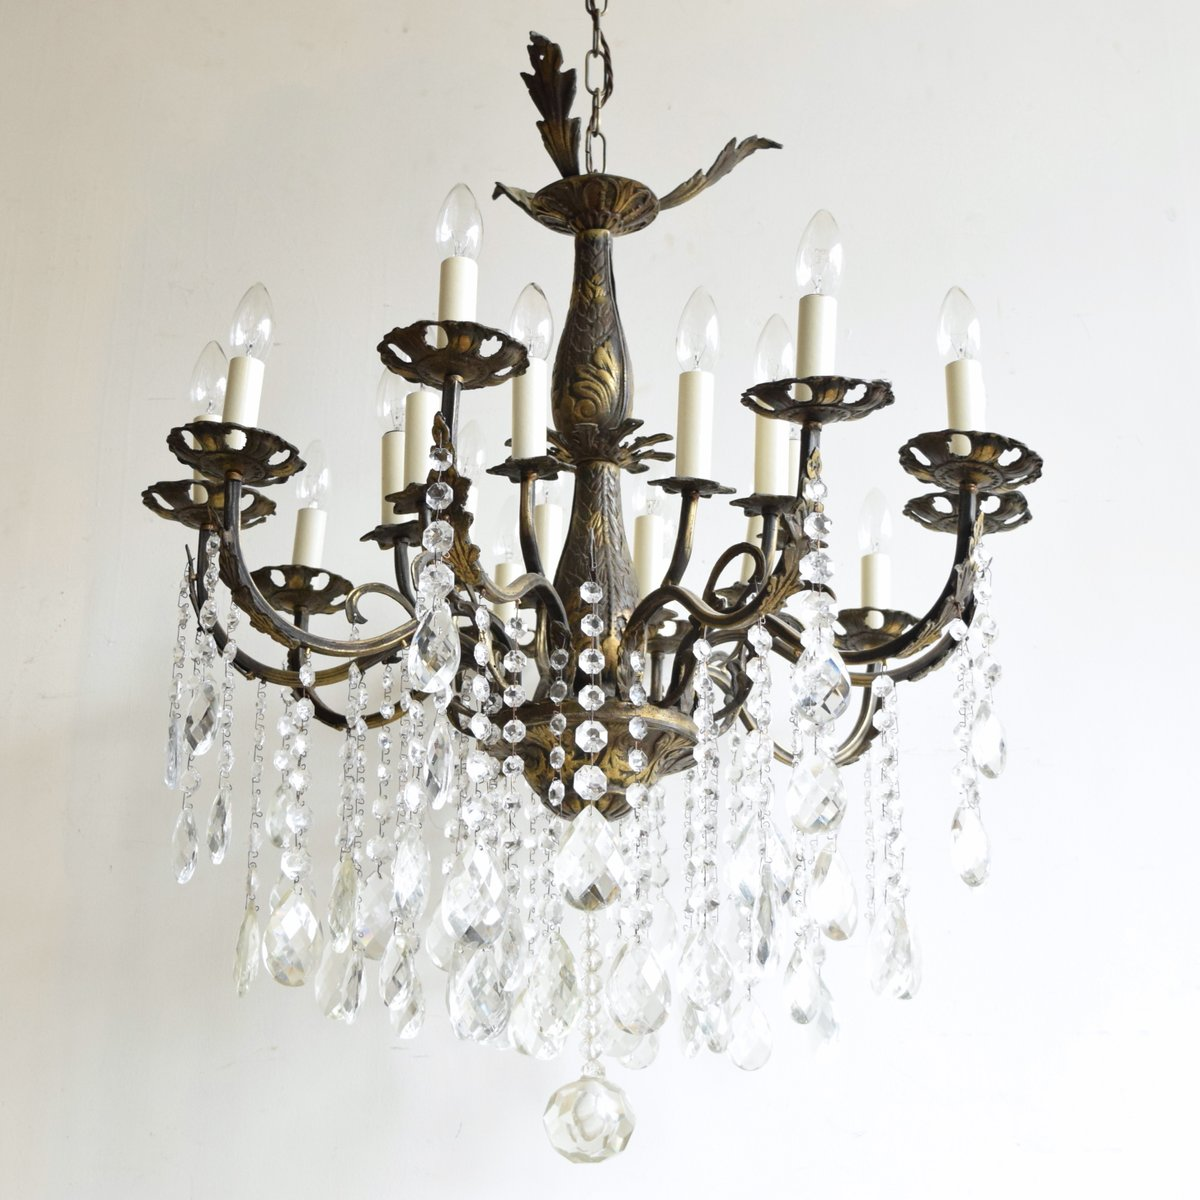 on info lighting for driftwood chandelier sale concassage shop